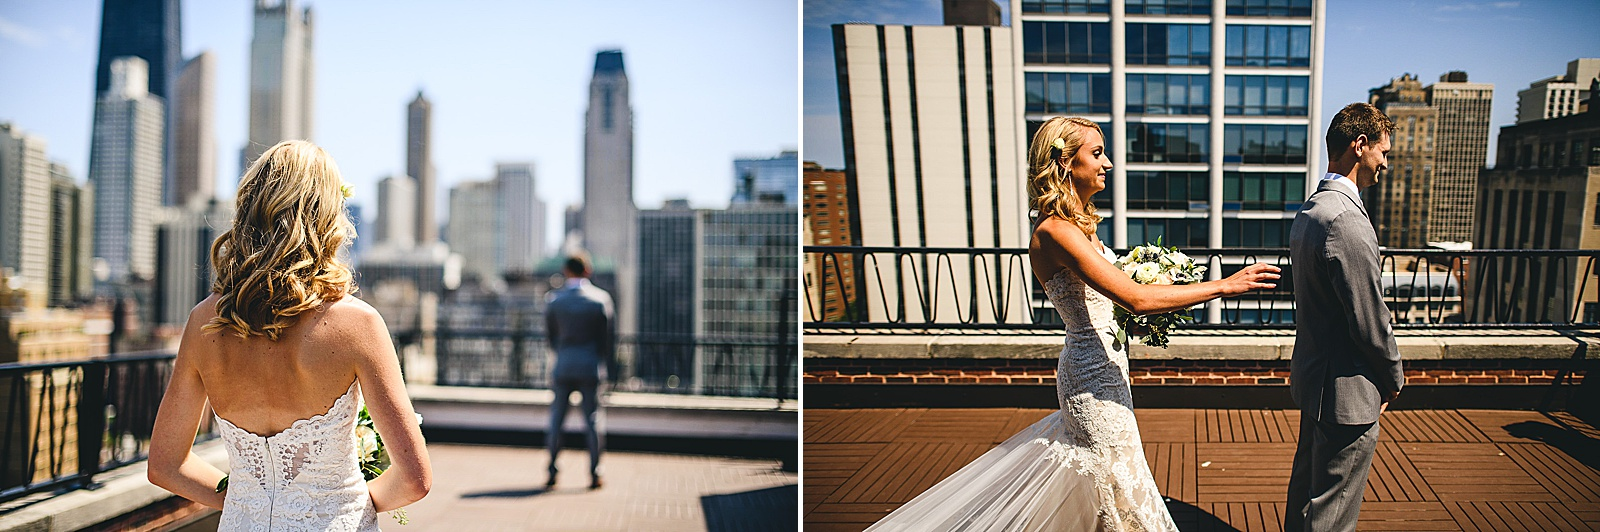 17 ambassador hotel in chicago first look - Audrey + Jake's Beautiful Chicago Wedding at Chez